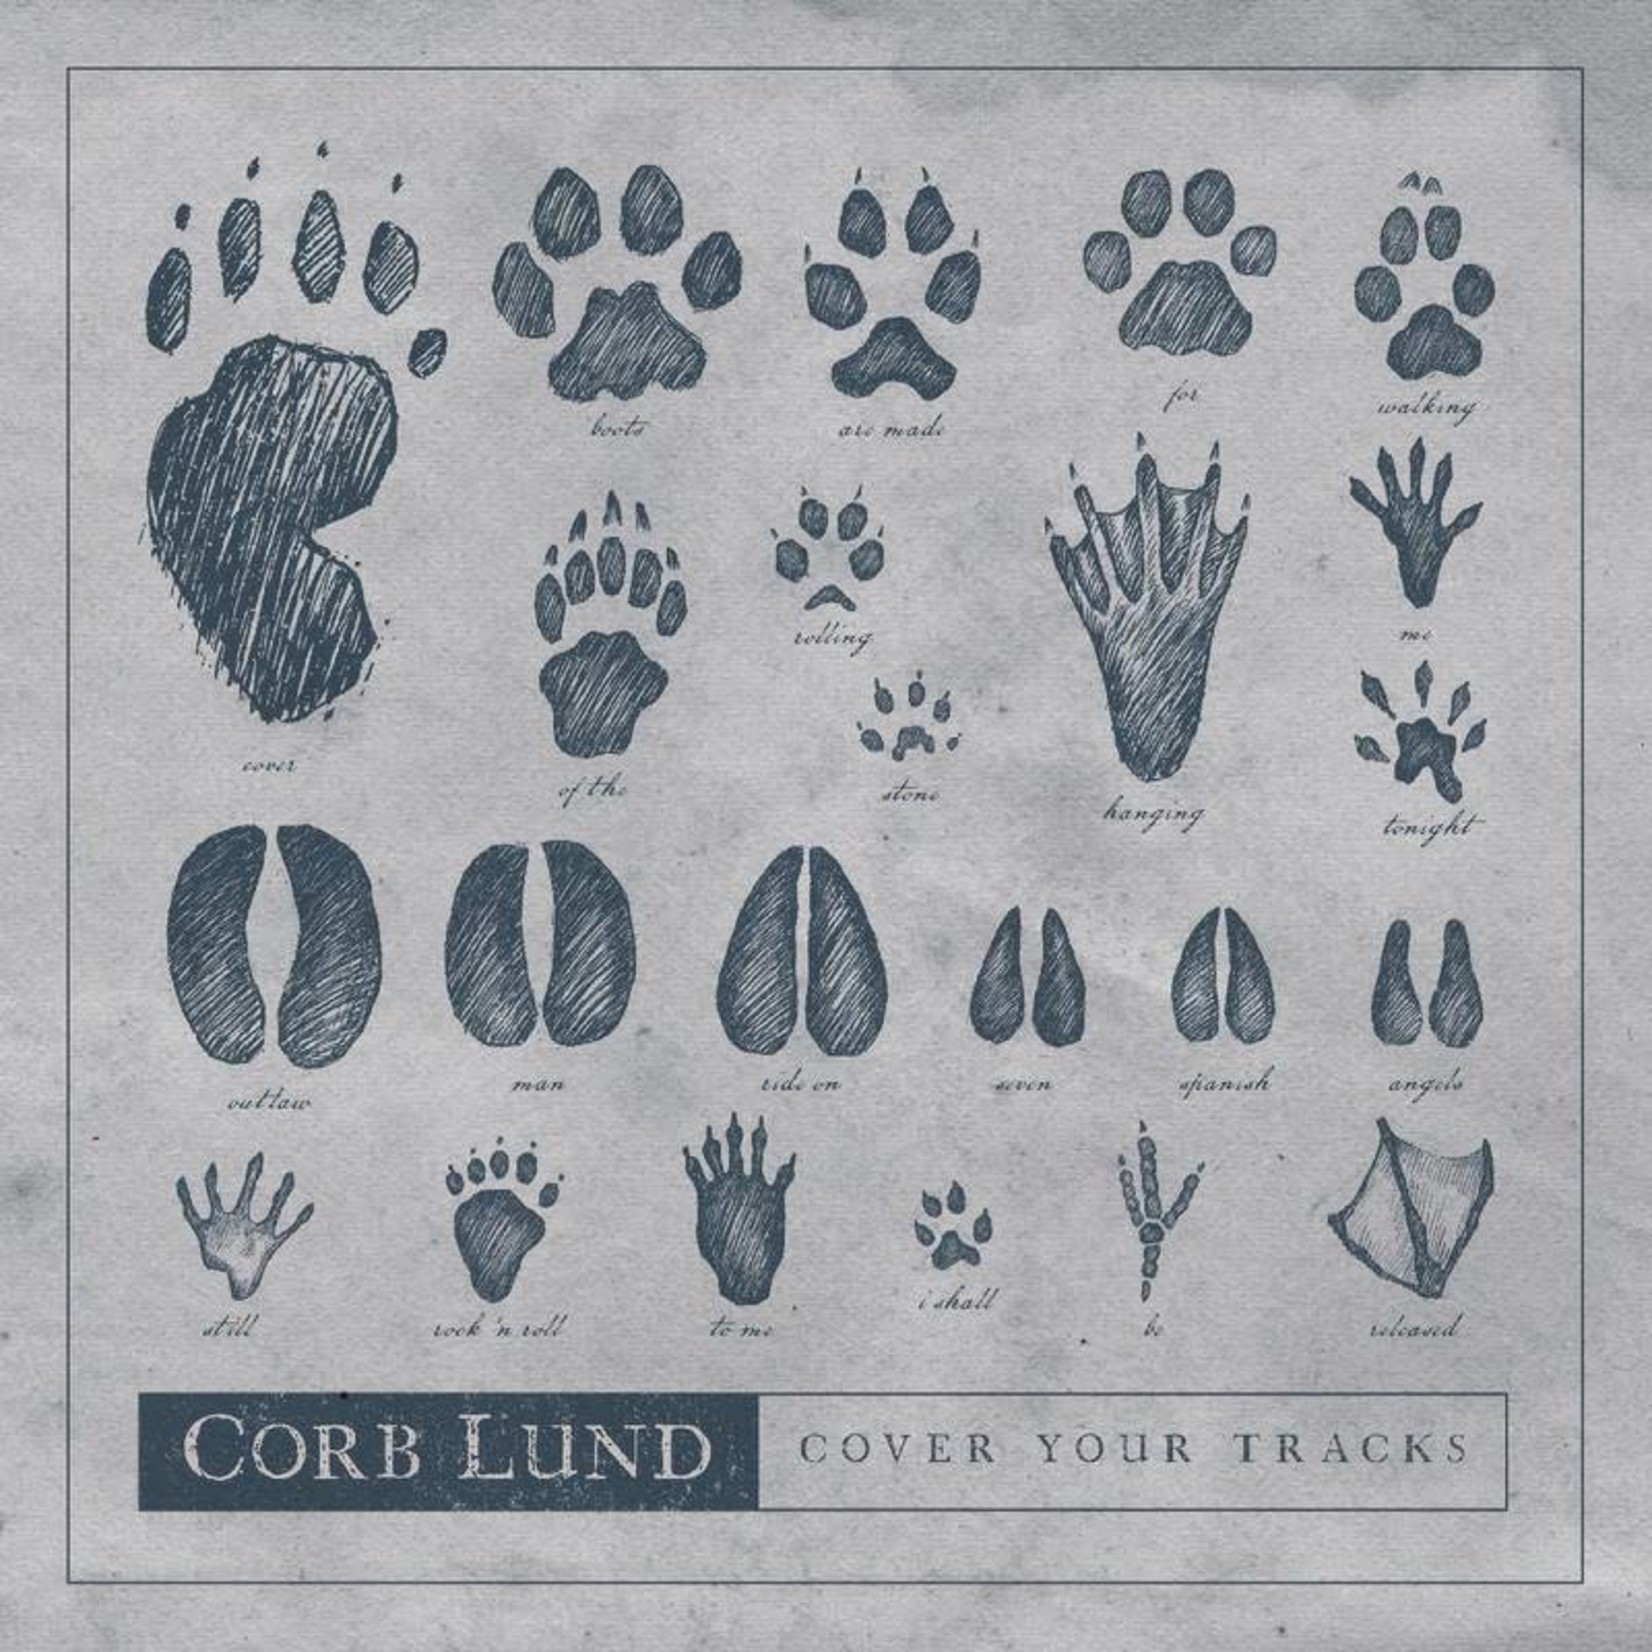 Corb Lund Corb Lund - Cover Your Tracks